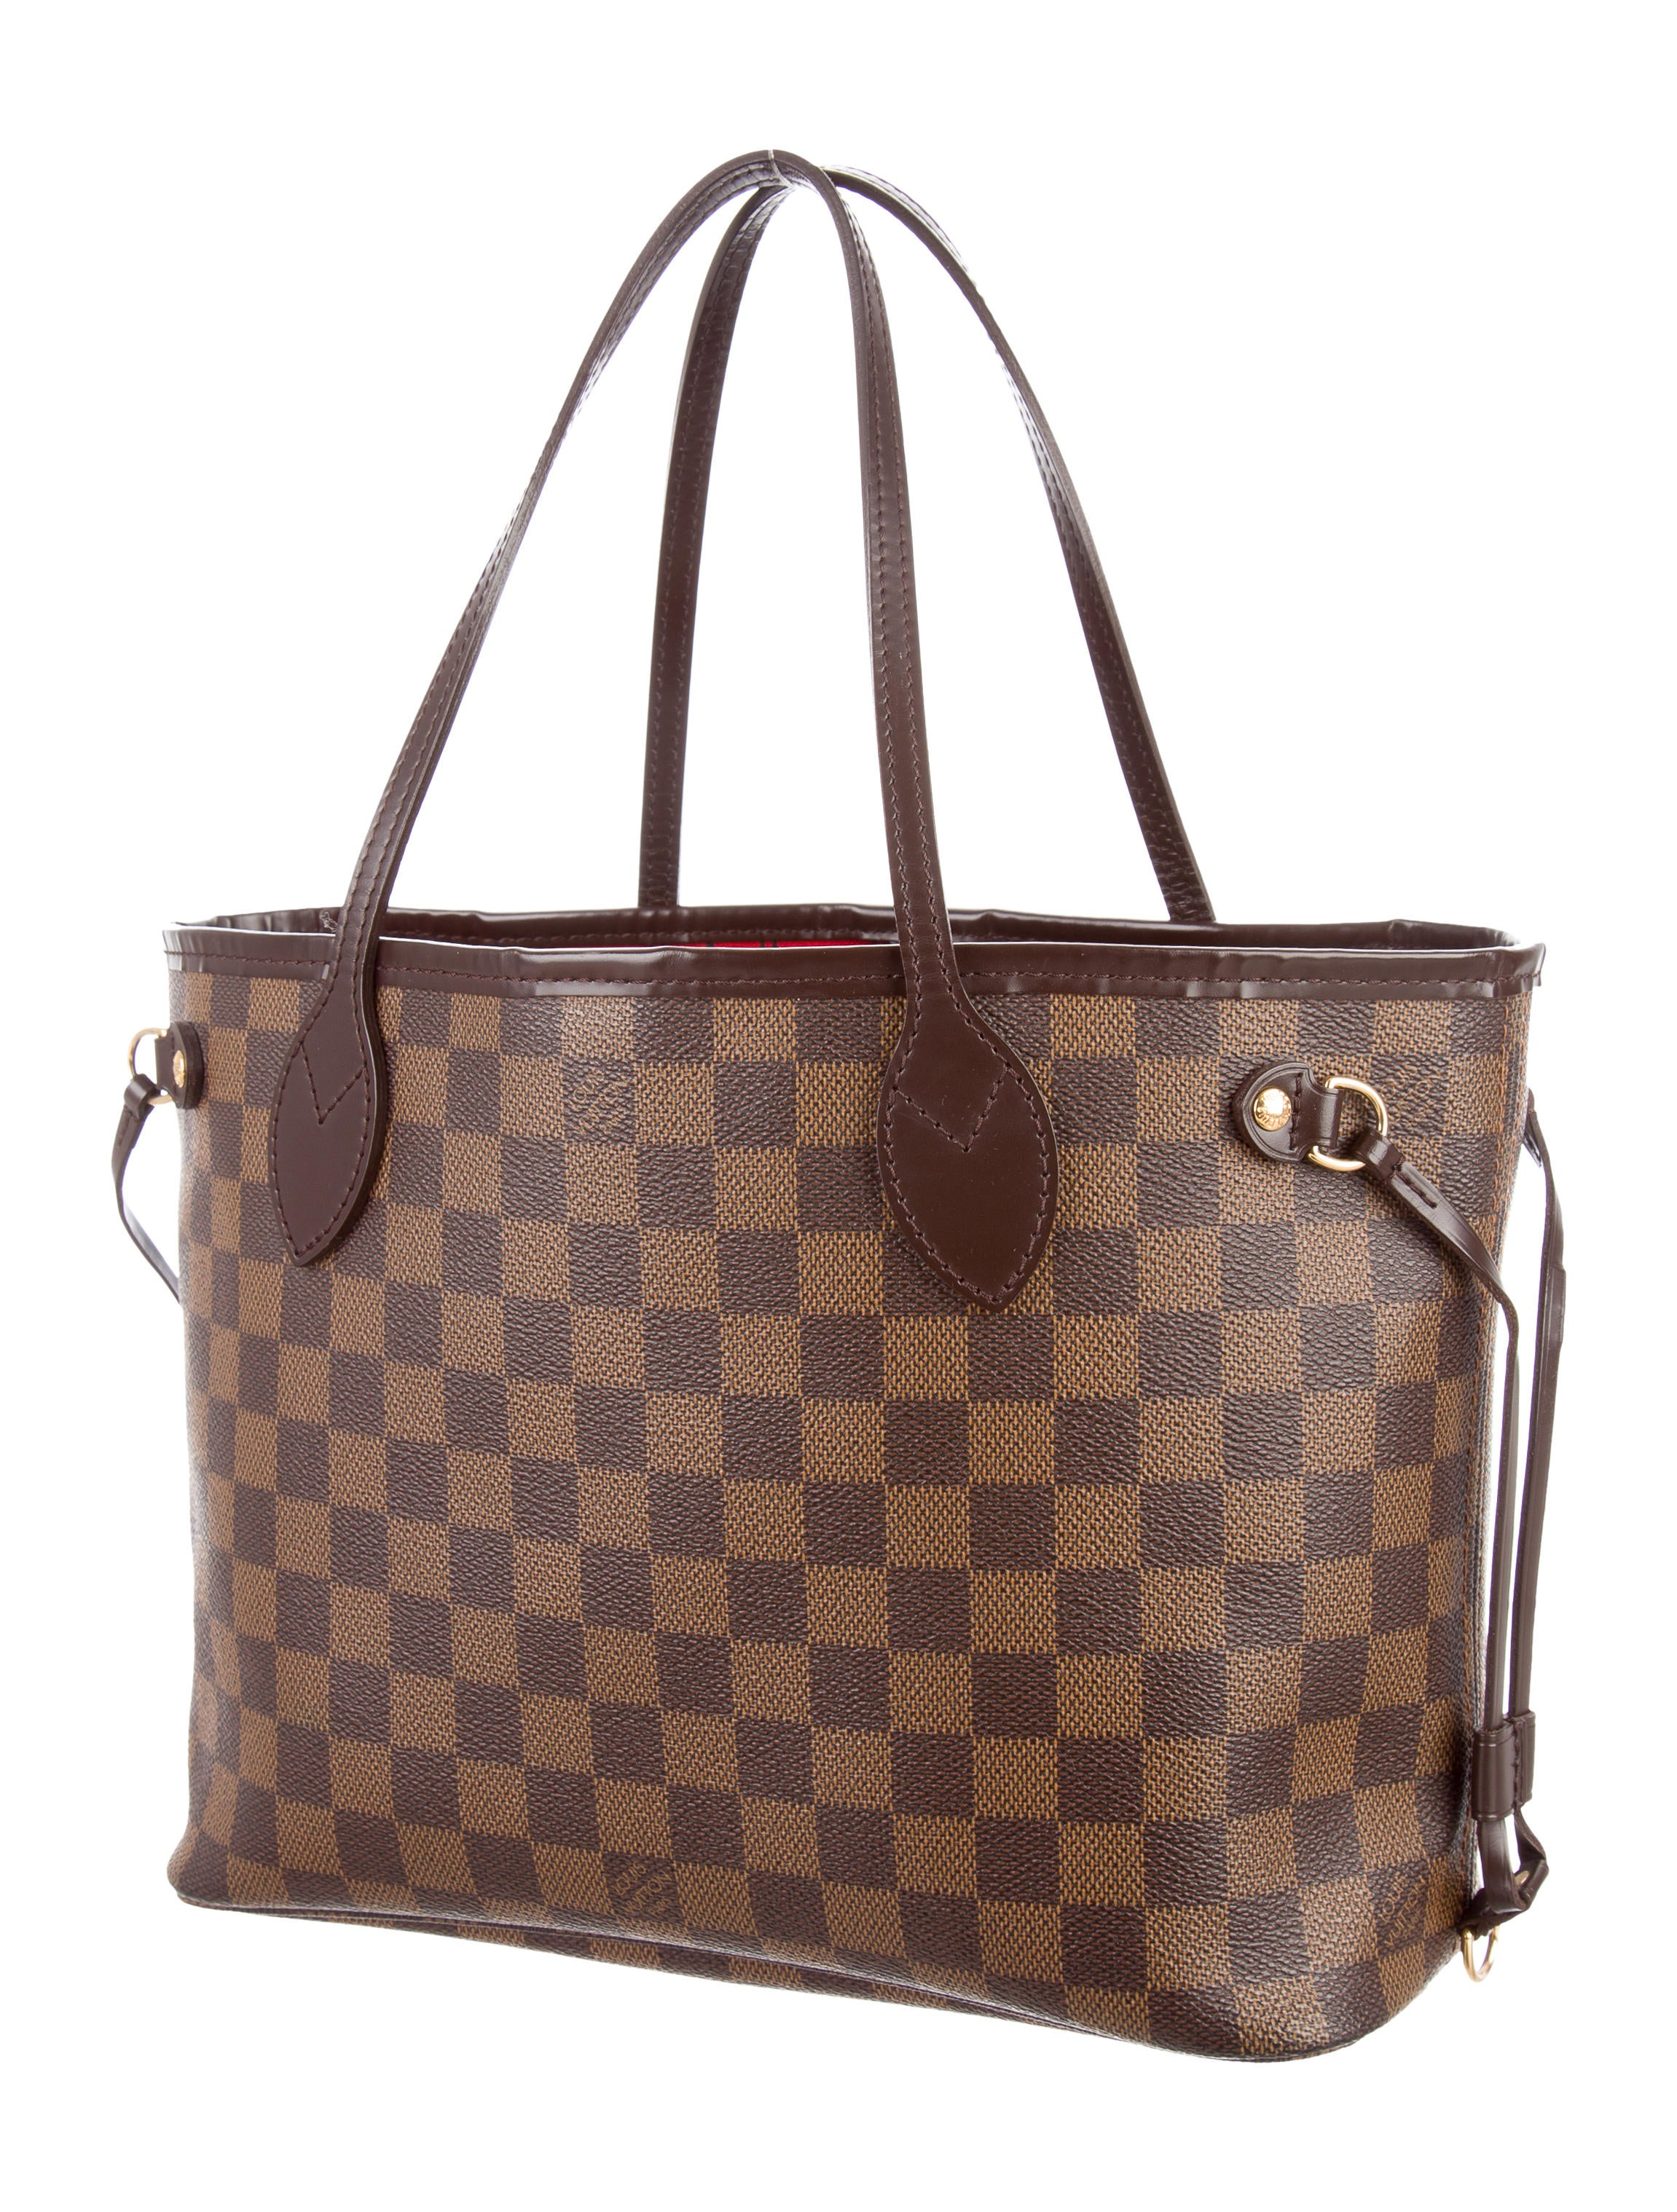 Brown Leather Dining Room Chairs Louis Vuitton Damier Ebene Neverfull Pm Handbags